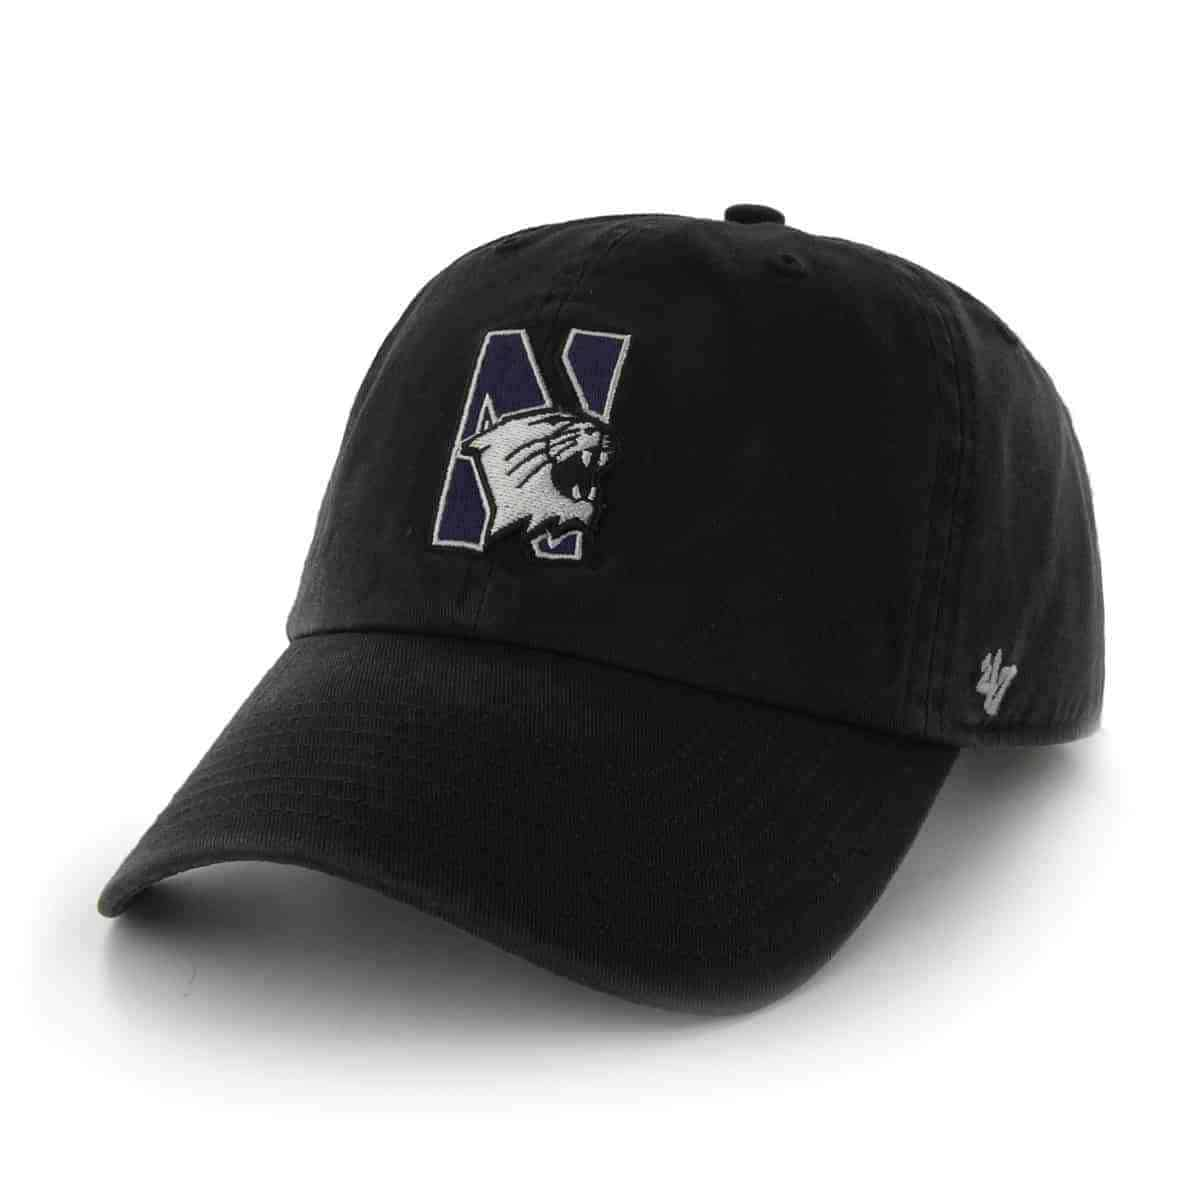 d0336212f Northwestern University Wildcats 47 Brand Black Fitted Franchise Hat With  N-Cat Design